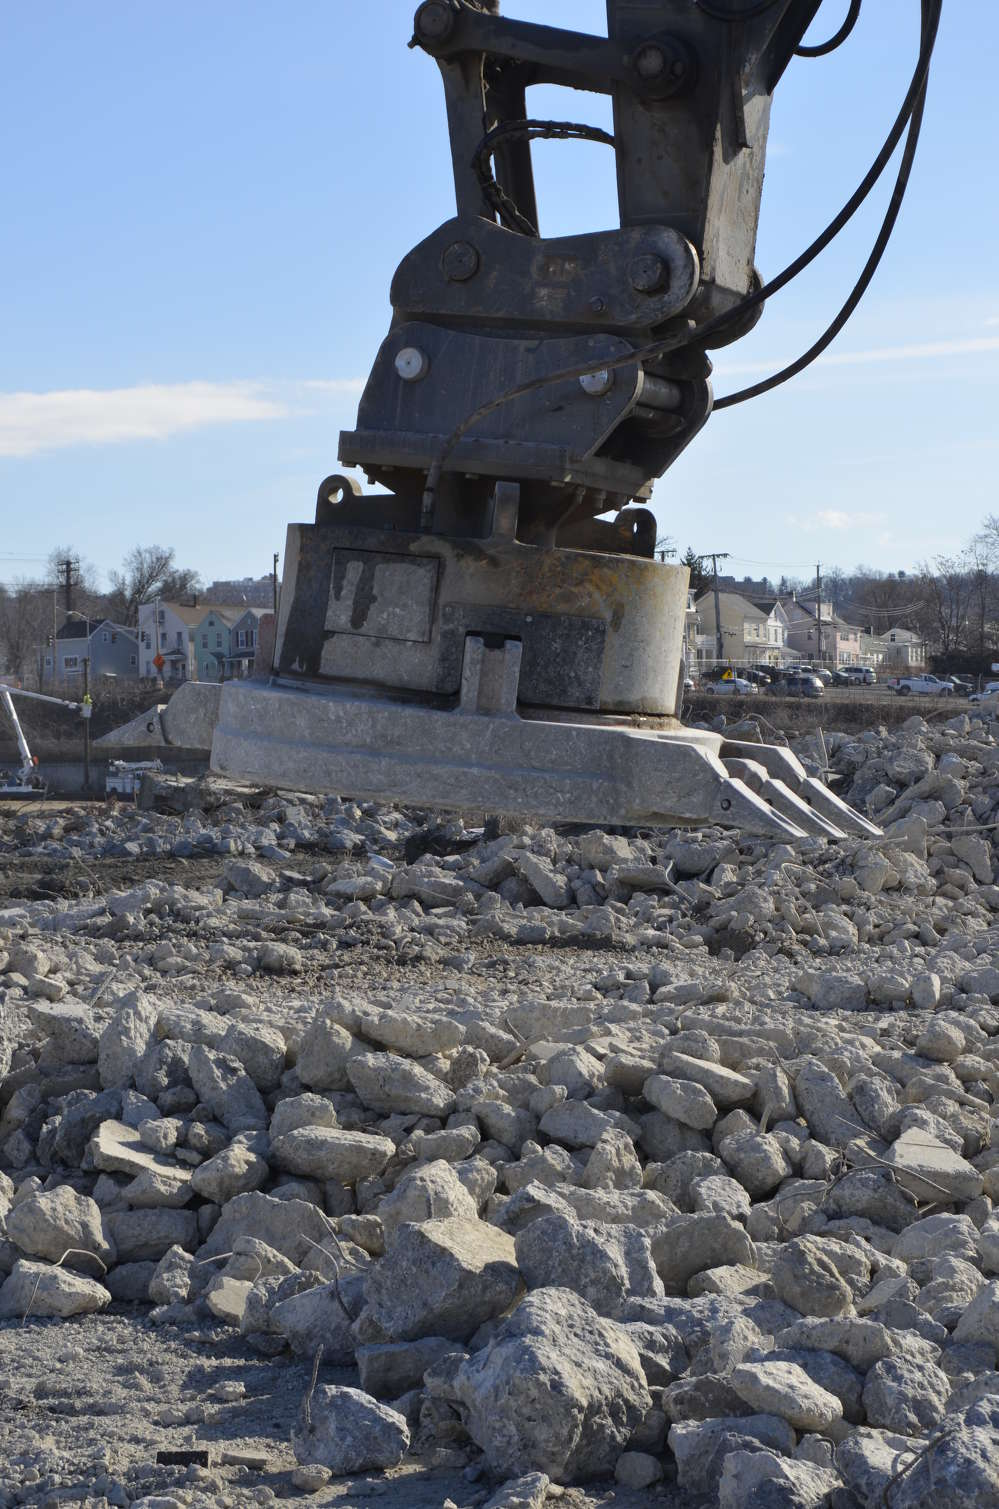 This Moley hydraulic magnet was purchased from National Attachments.  The claw teeth on each side allow the magnet to scrape through concrete rubble, exposing the rebar.